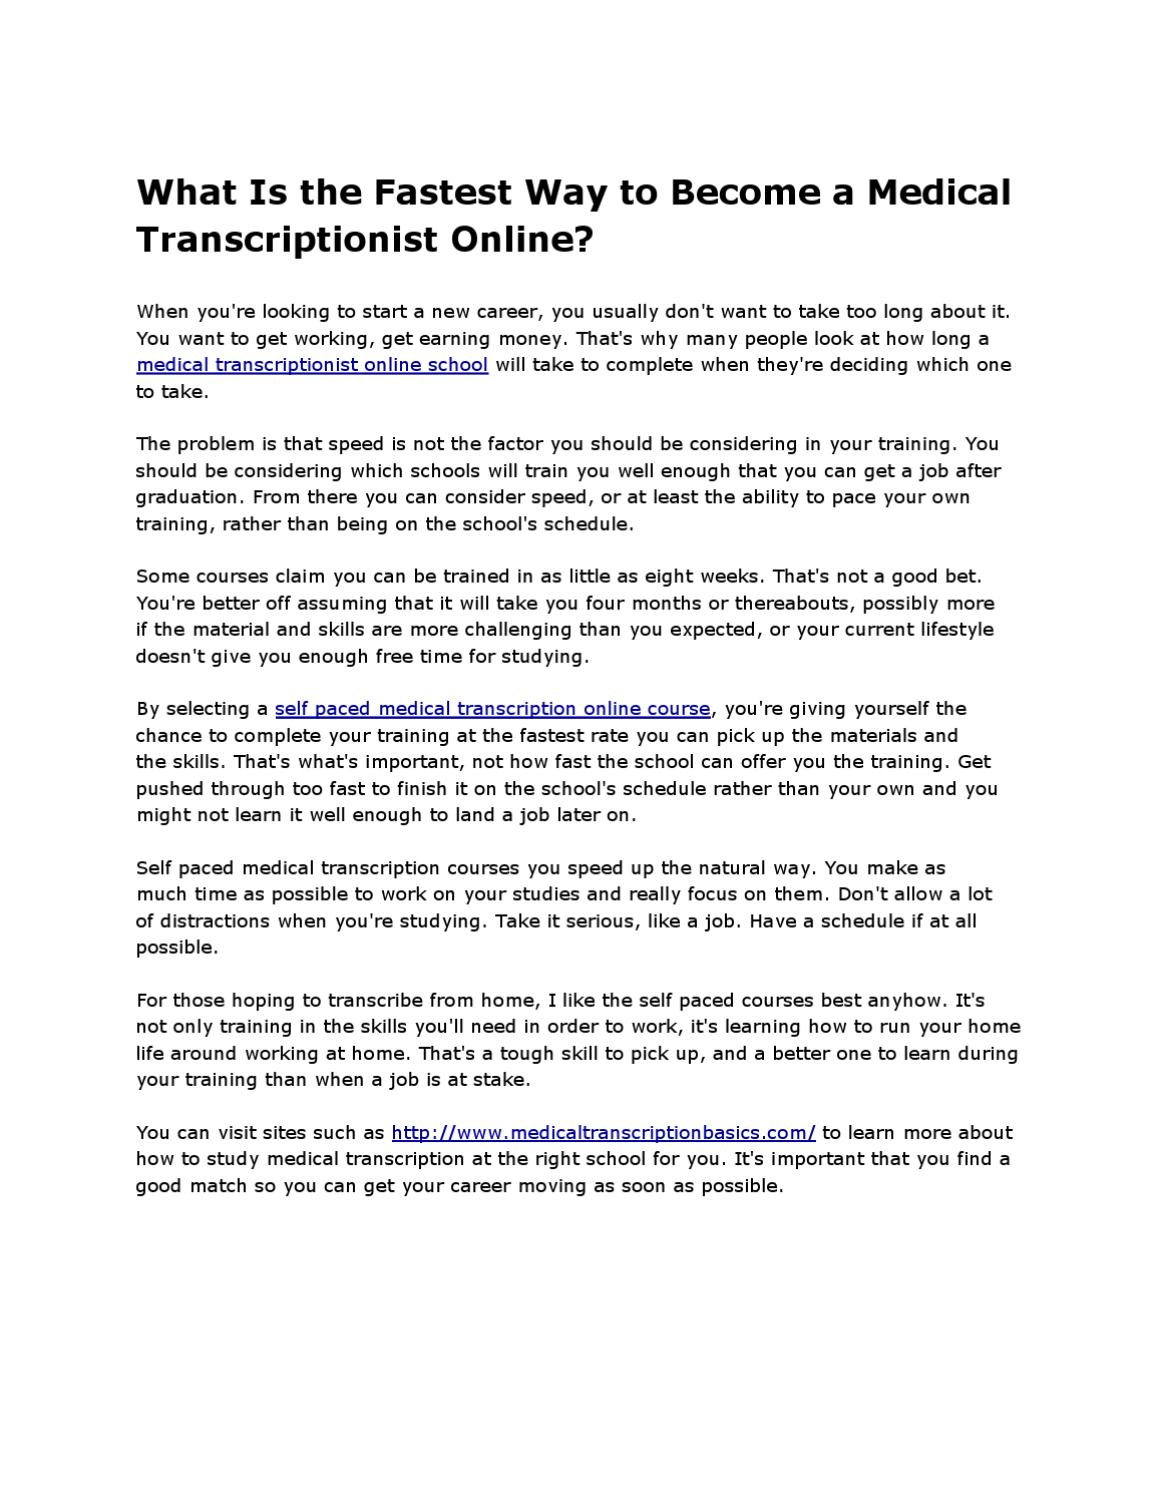 What Is The Fastest Way To Become A Medical Transcriptionist Online